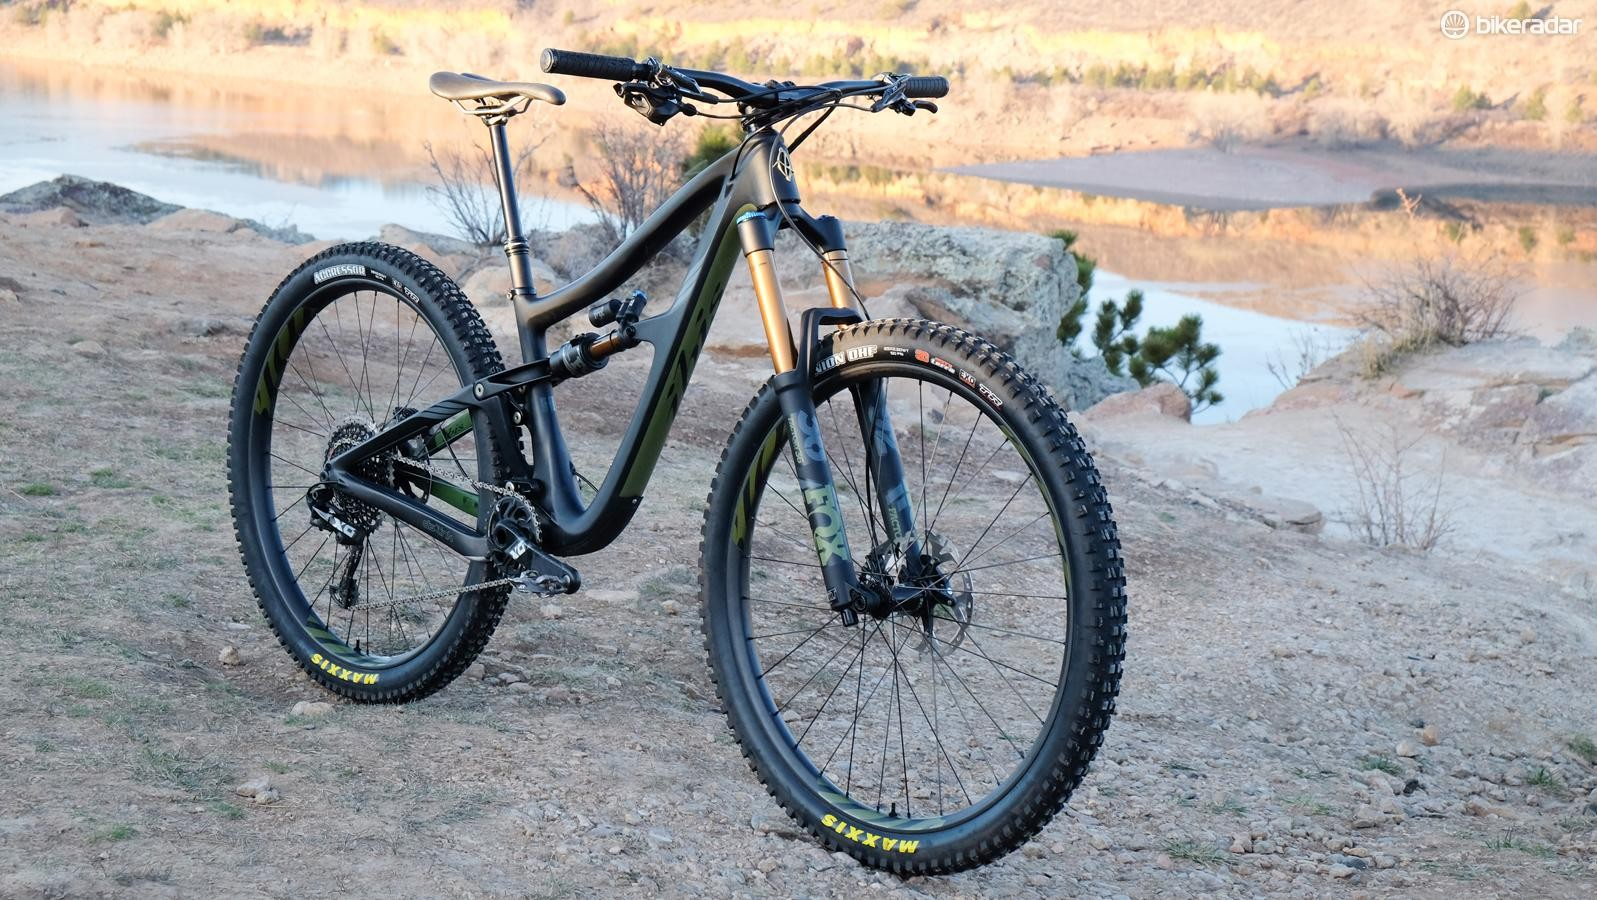 The Ripmo is Ibis's take on a long-travel 29er